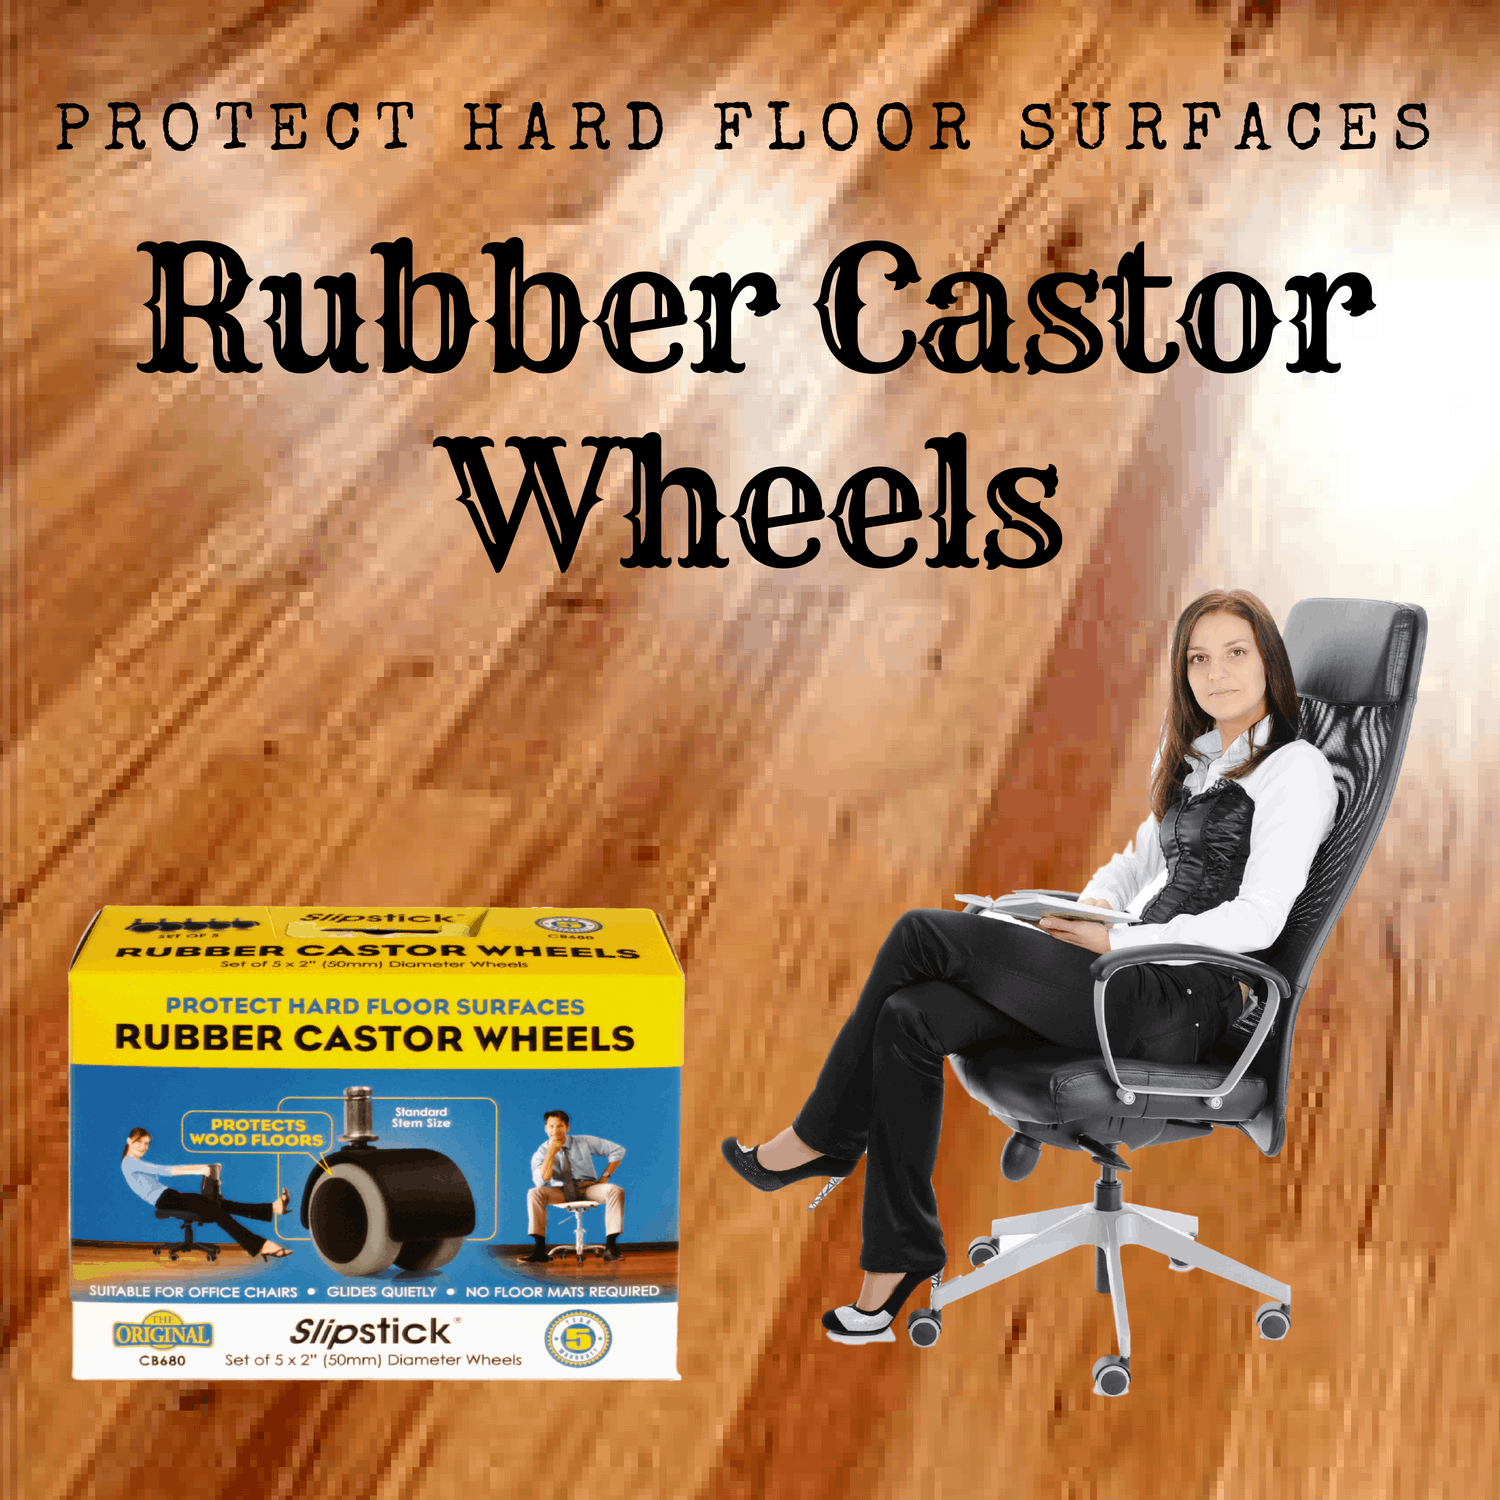 3c5e57031 CB680 Slipstick Rubber Castor Wheels for Office Chairs